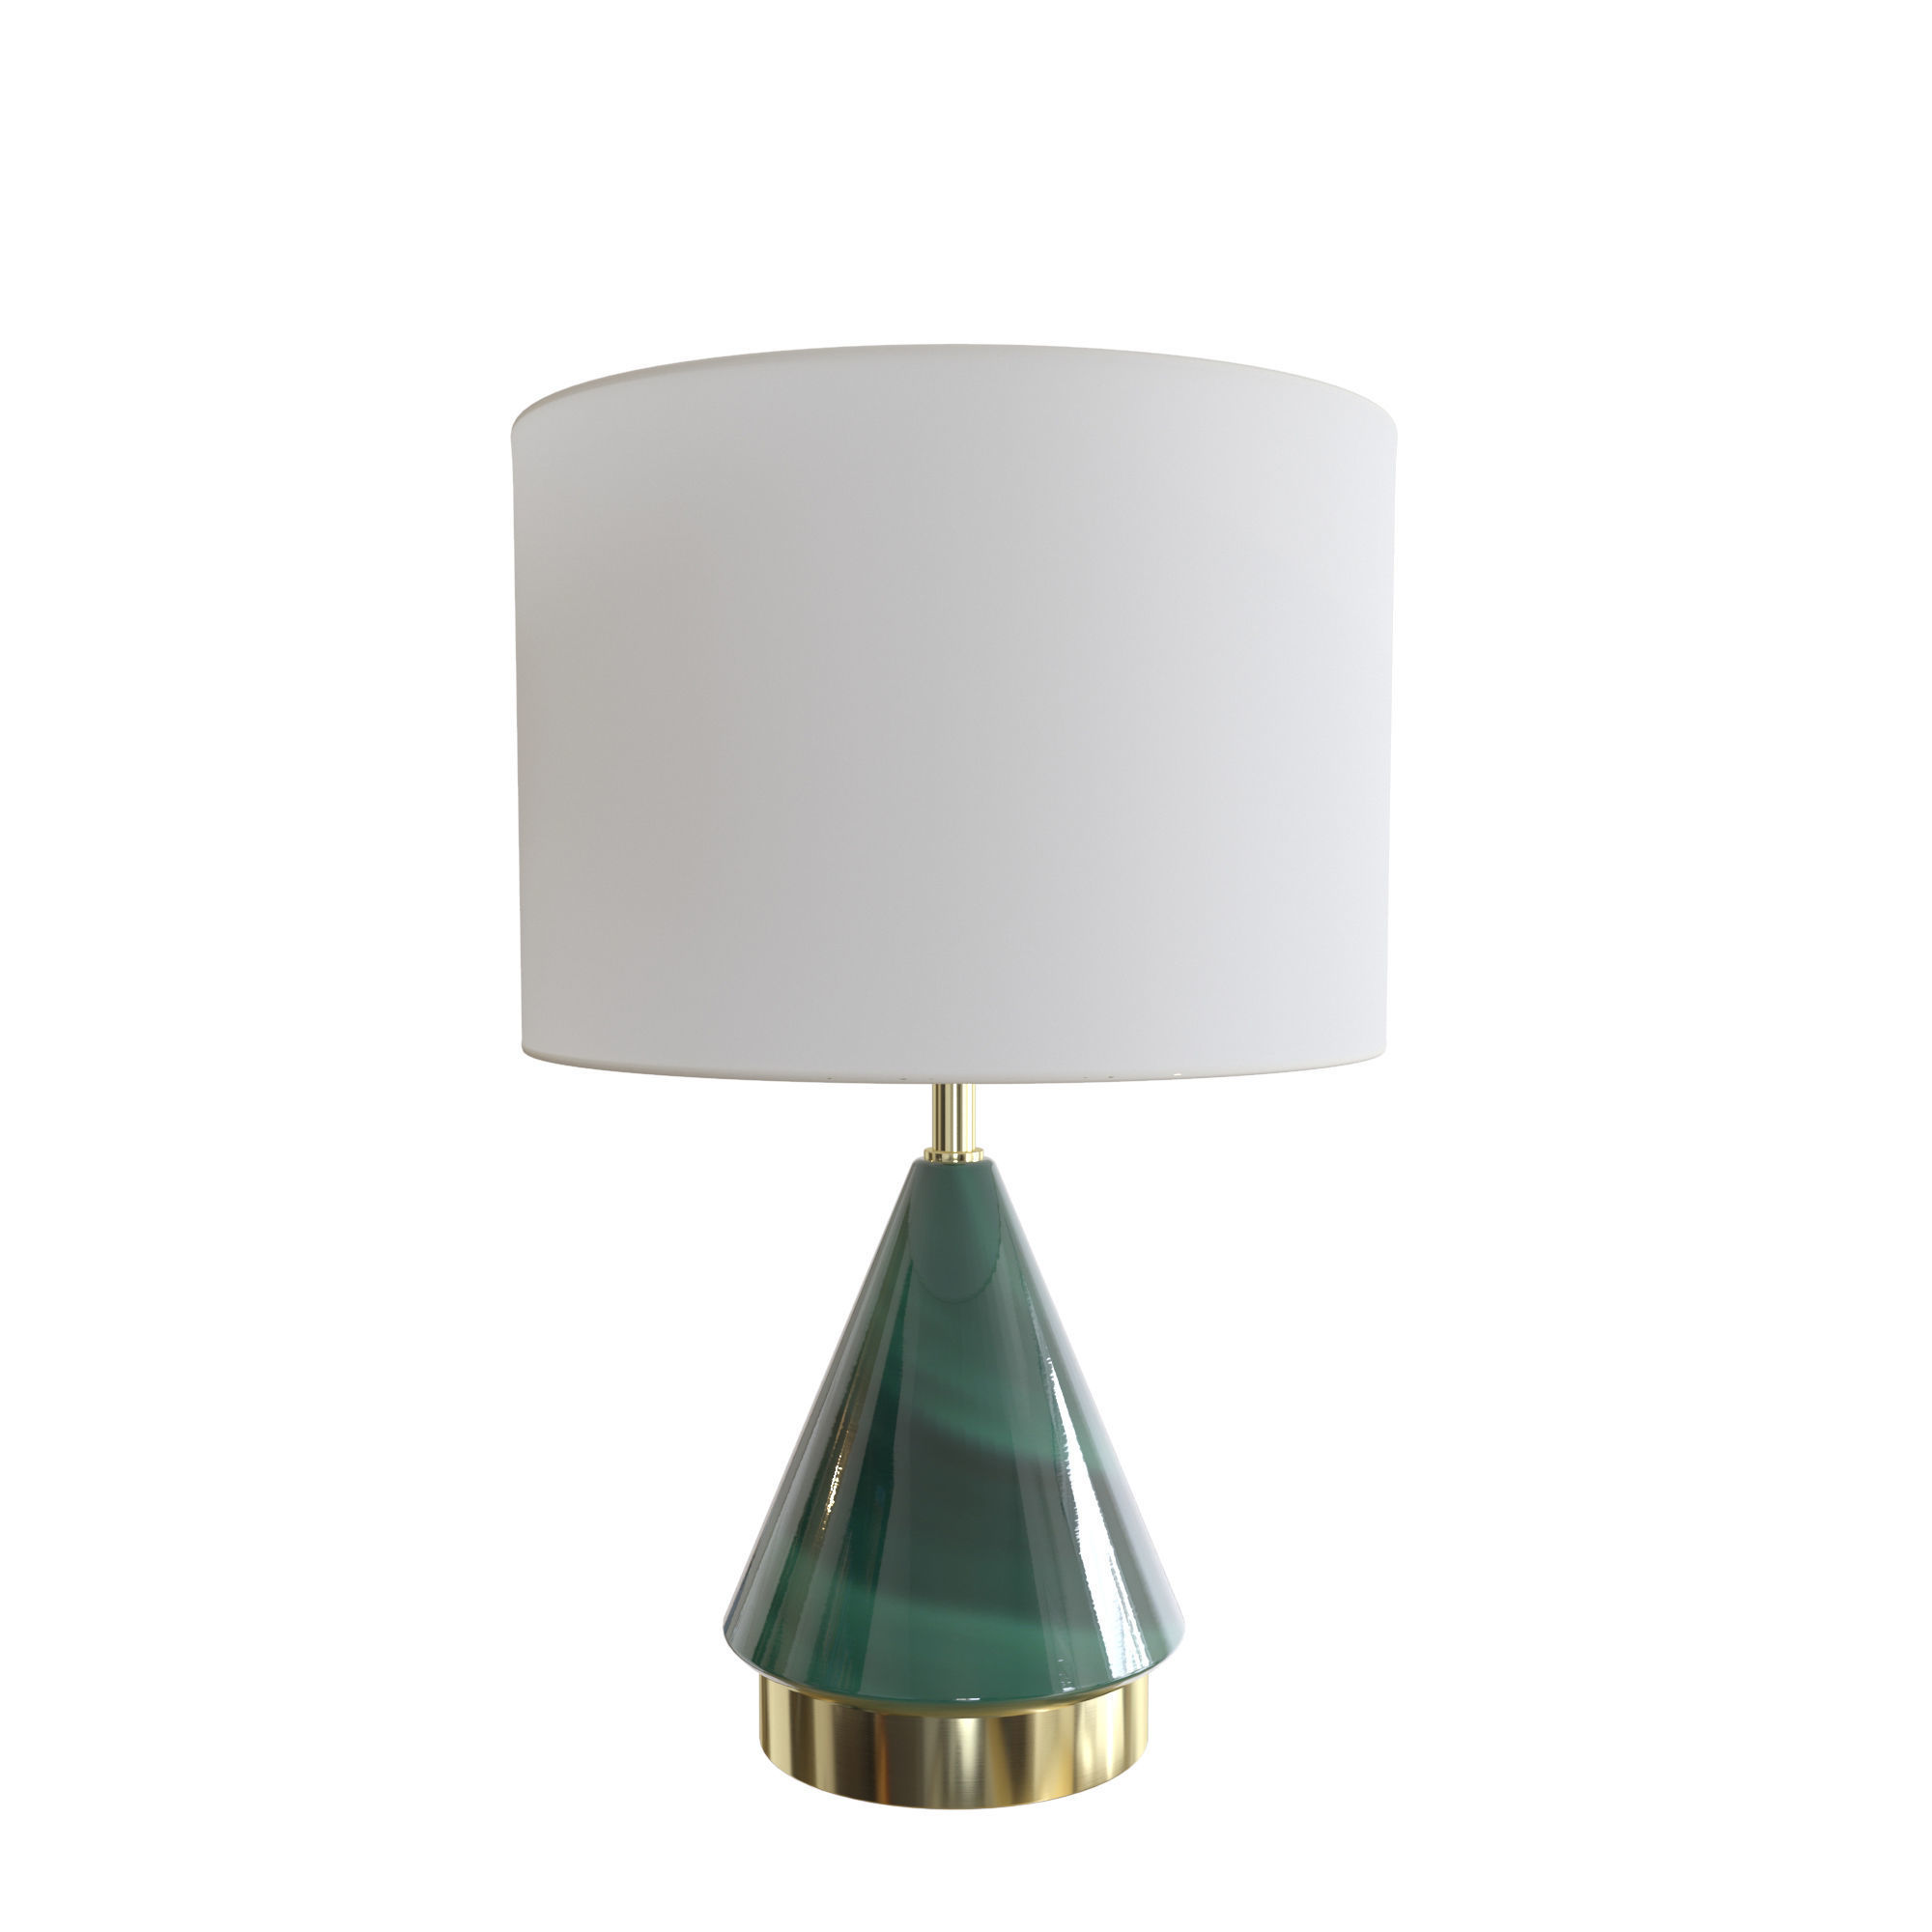 feature room bedside glass discount lamps ideas small living antique ashley tiffany with laura lamp red new white nightstand table accent tall of base floor brass